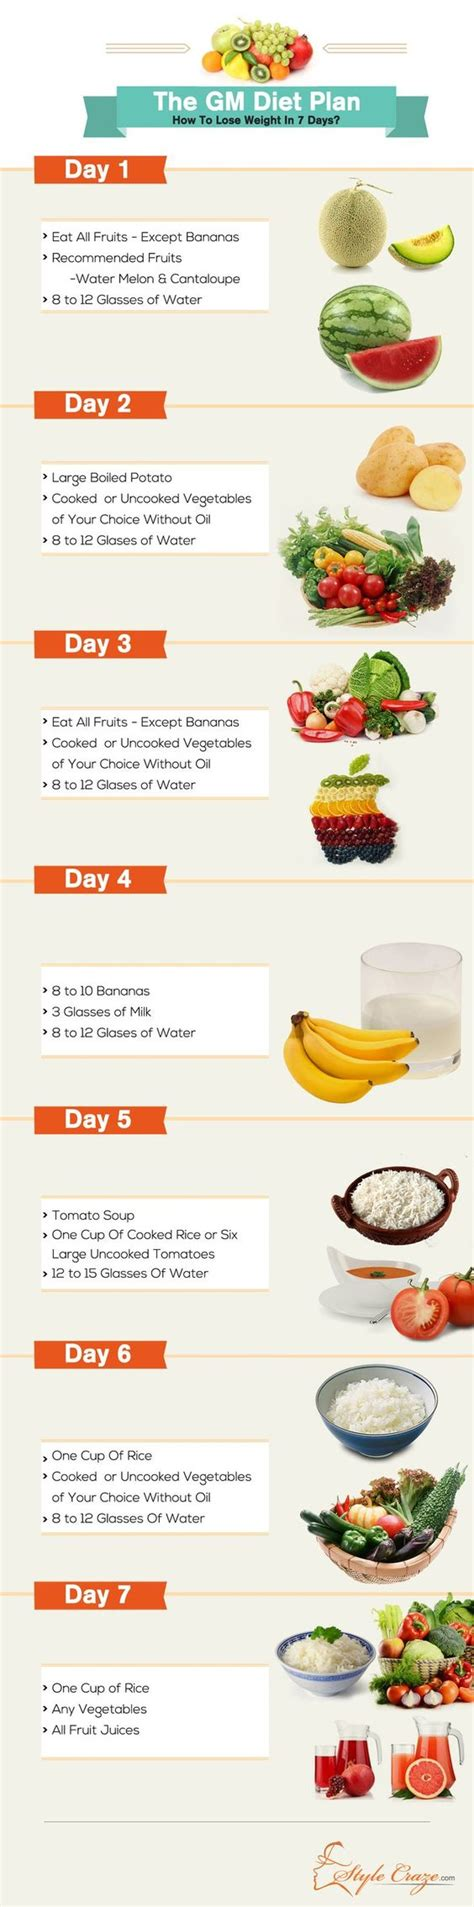 Detox Diets To Lose Weight In A Week by The Gm Diet Plan How To Lose Weight In Just 7 Days To